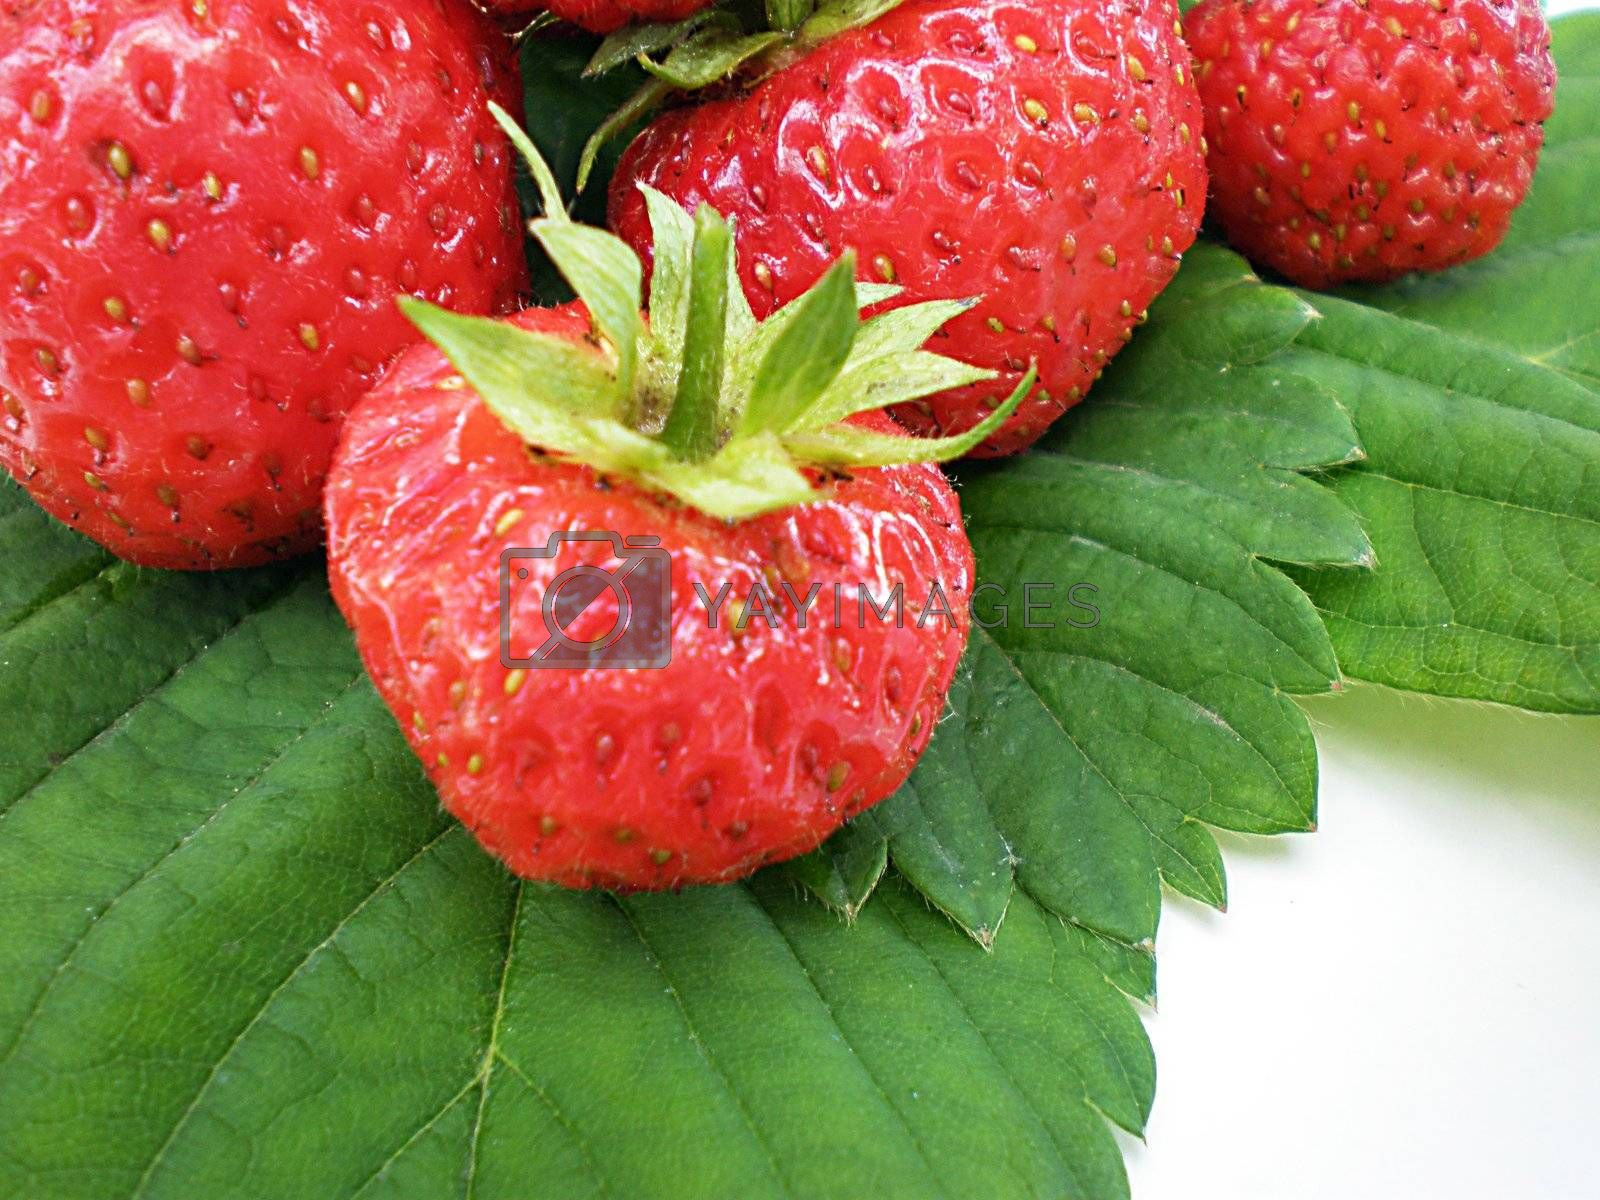 Royalty free image of strawberries by Dessie_bg